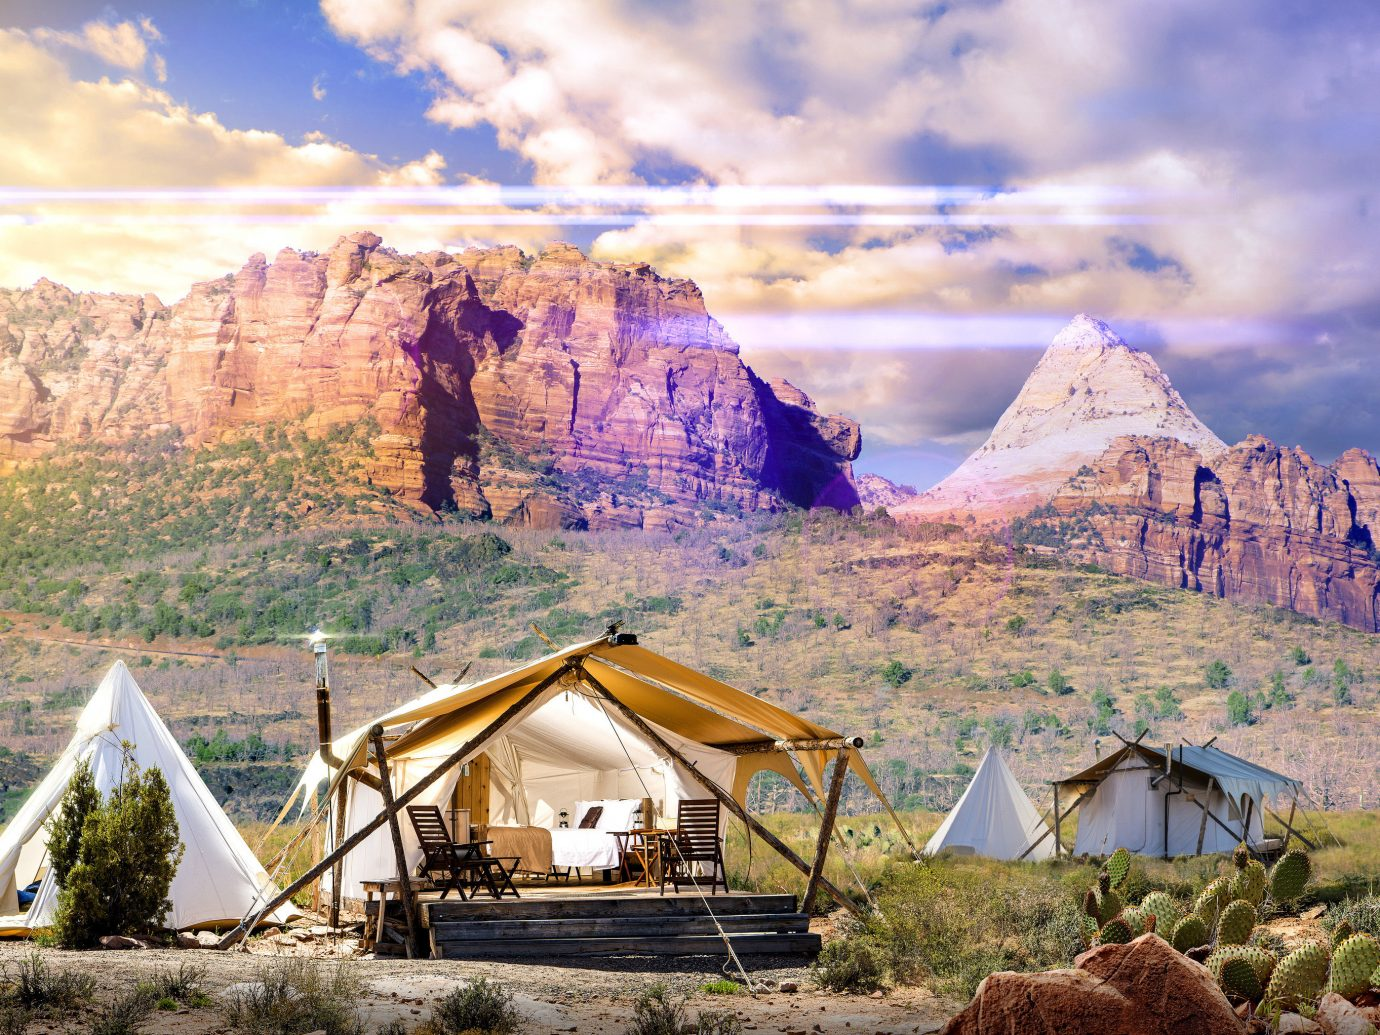 Glamping Outdoors + Adventure Trip Ideas mountain outdoor sky mountainous landforms geographical feature wilderness mountain range rock valley landscape Nature rural area plateau alps hut